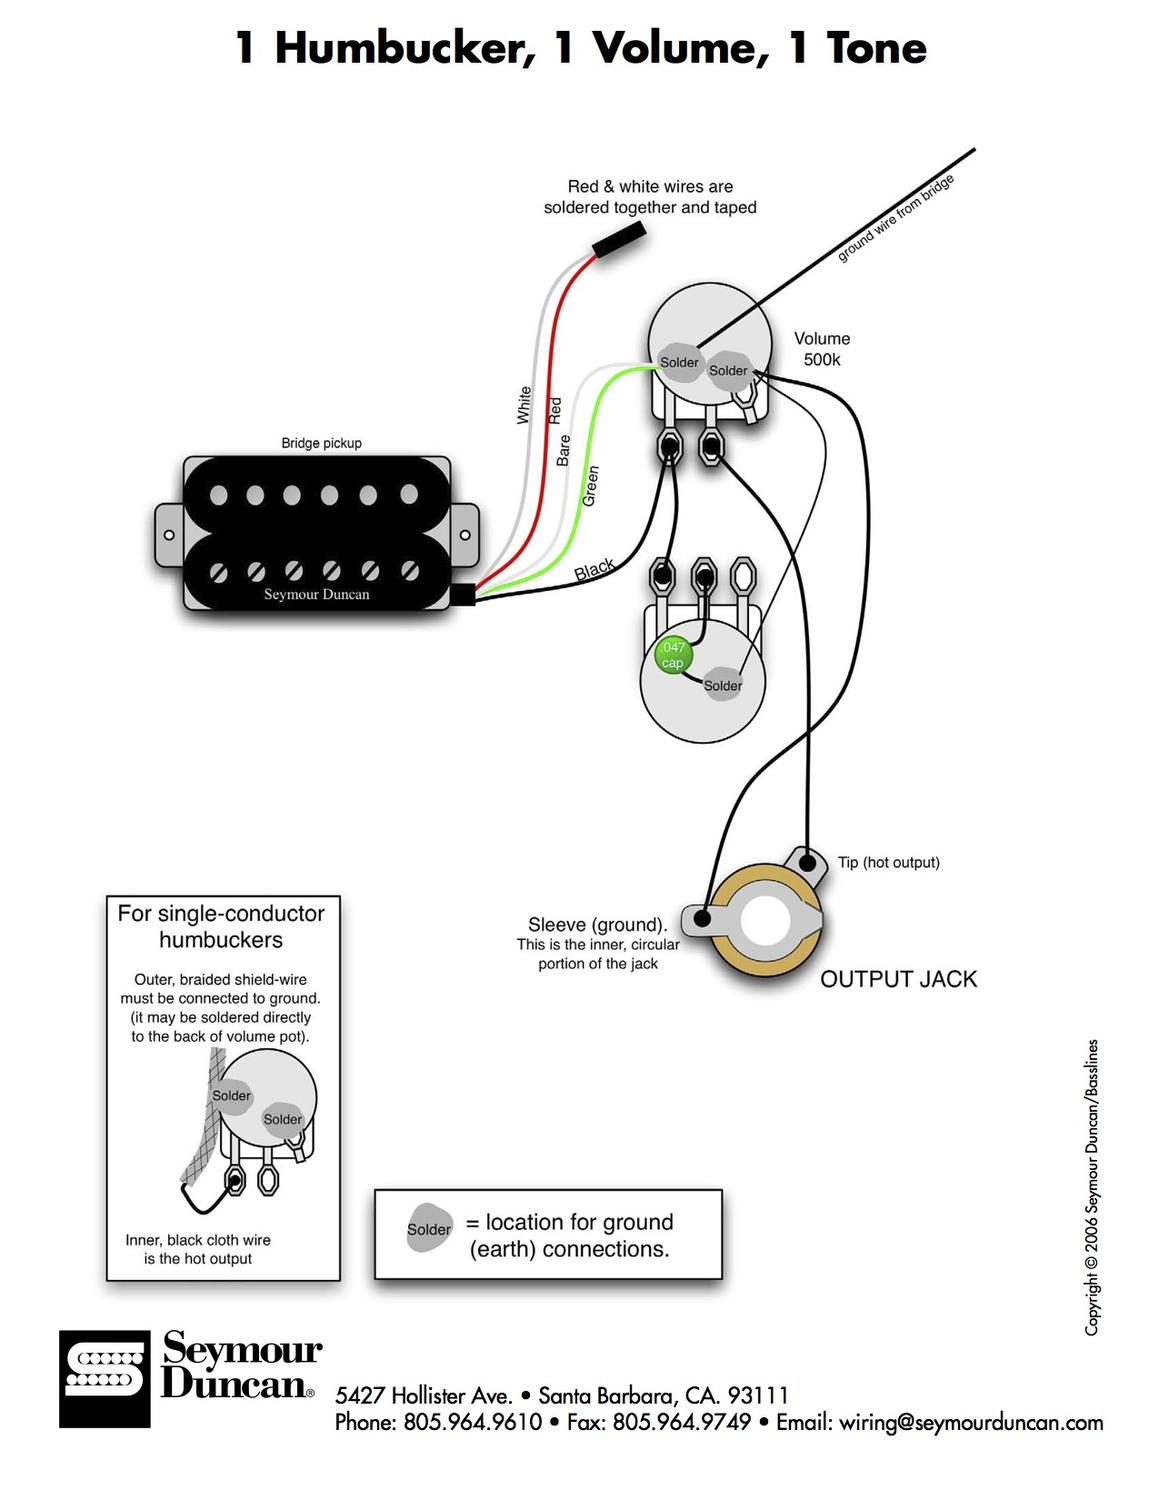 Coil Split Hss Wiring Diagram Diagrams Lindy Fralin Pickups Fat Strat Volume Tone Auto Schematic